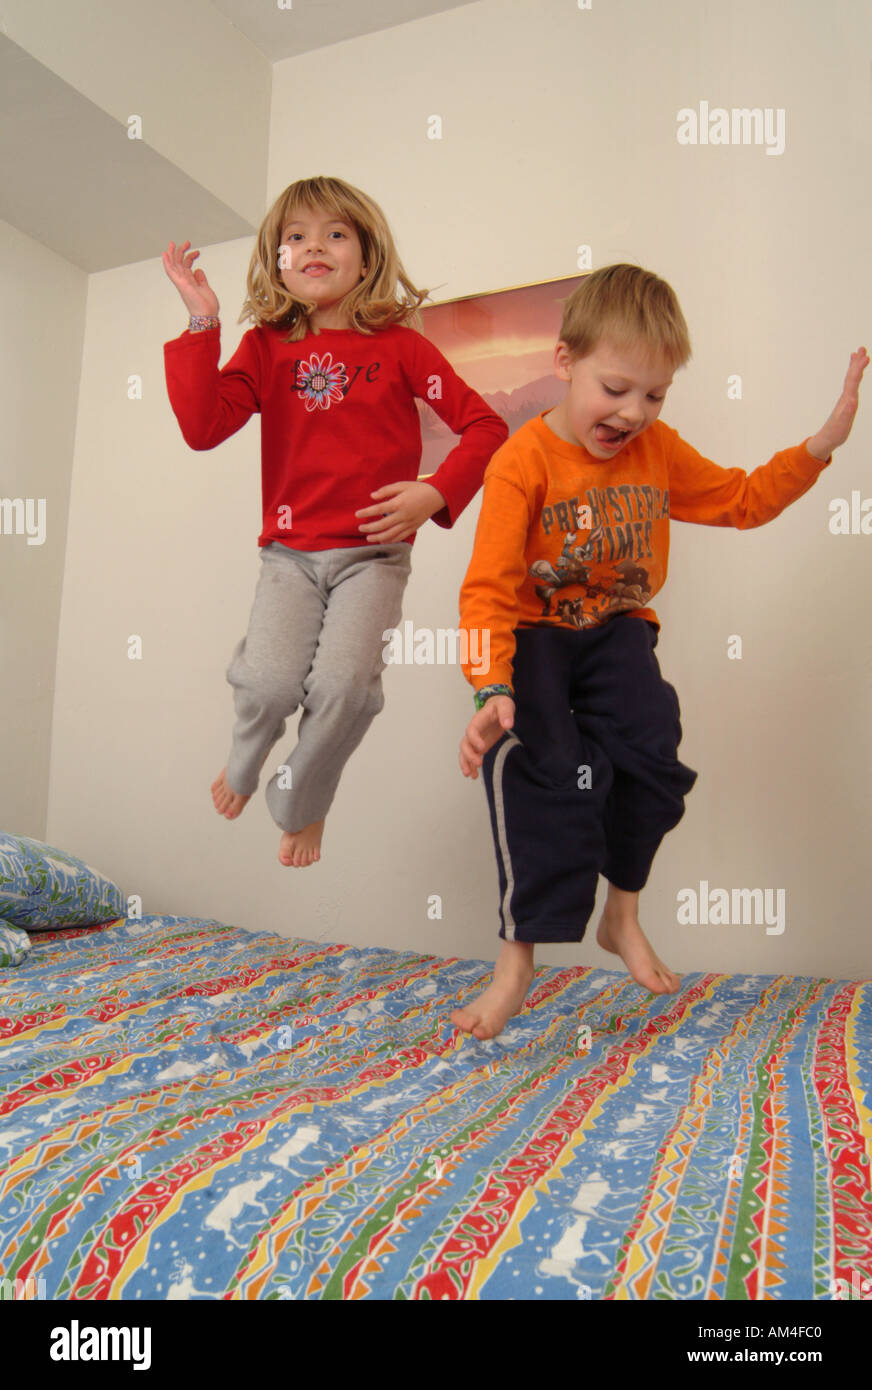 a boy and a girl jumping on a bed Stock Photo